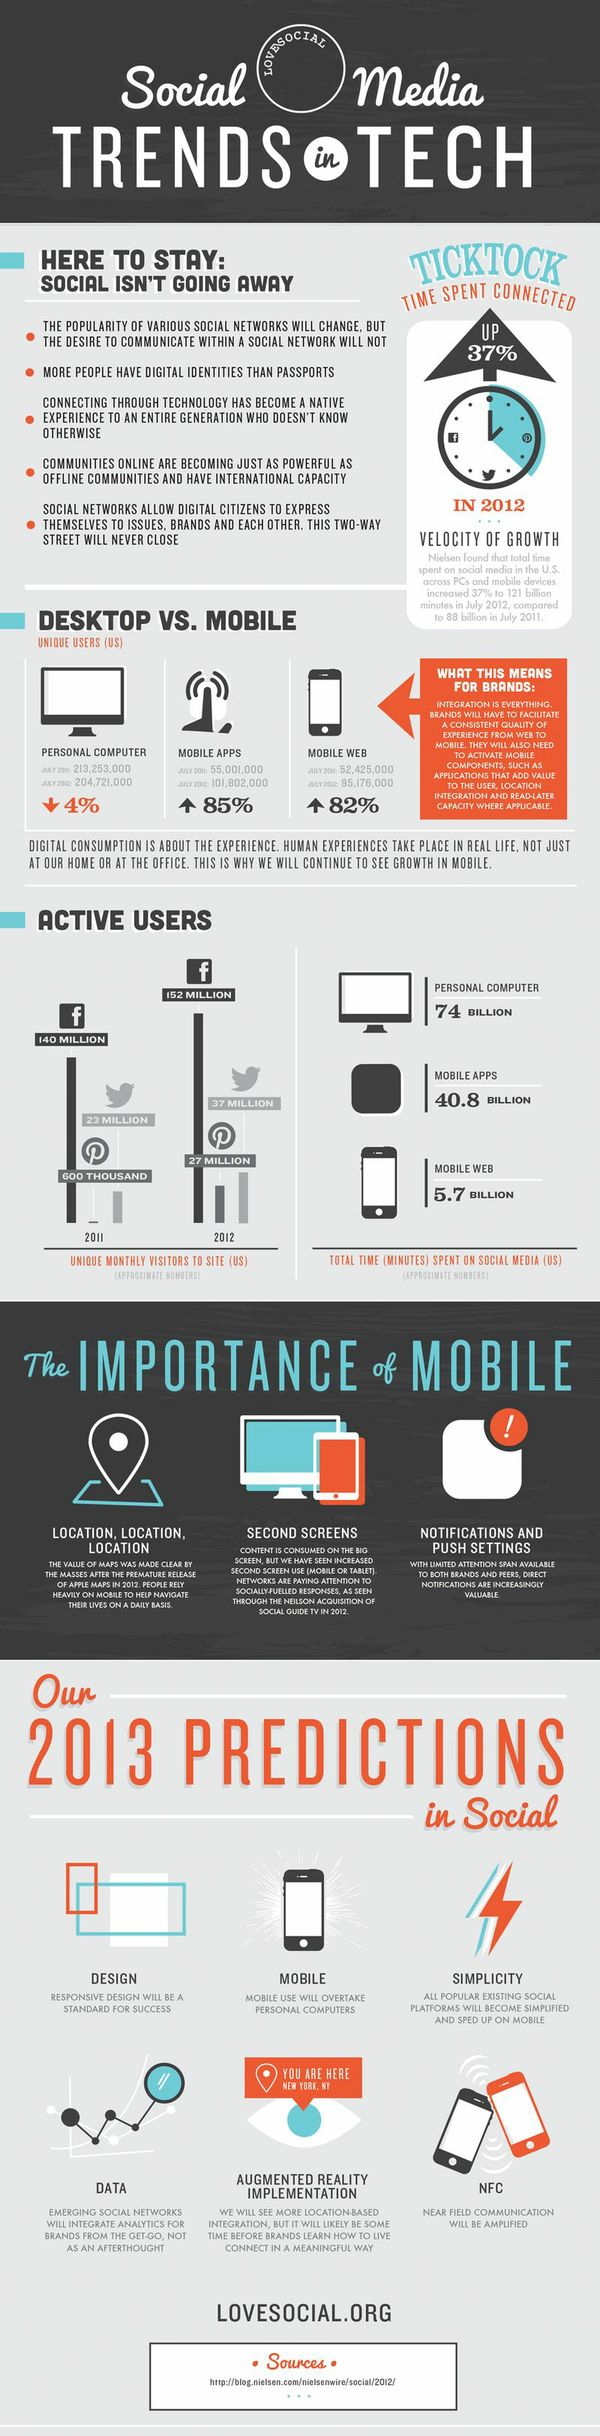 Social Media Trends in Tech #infographic